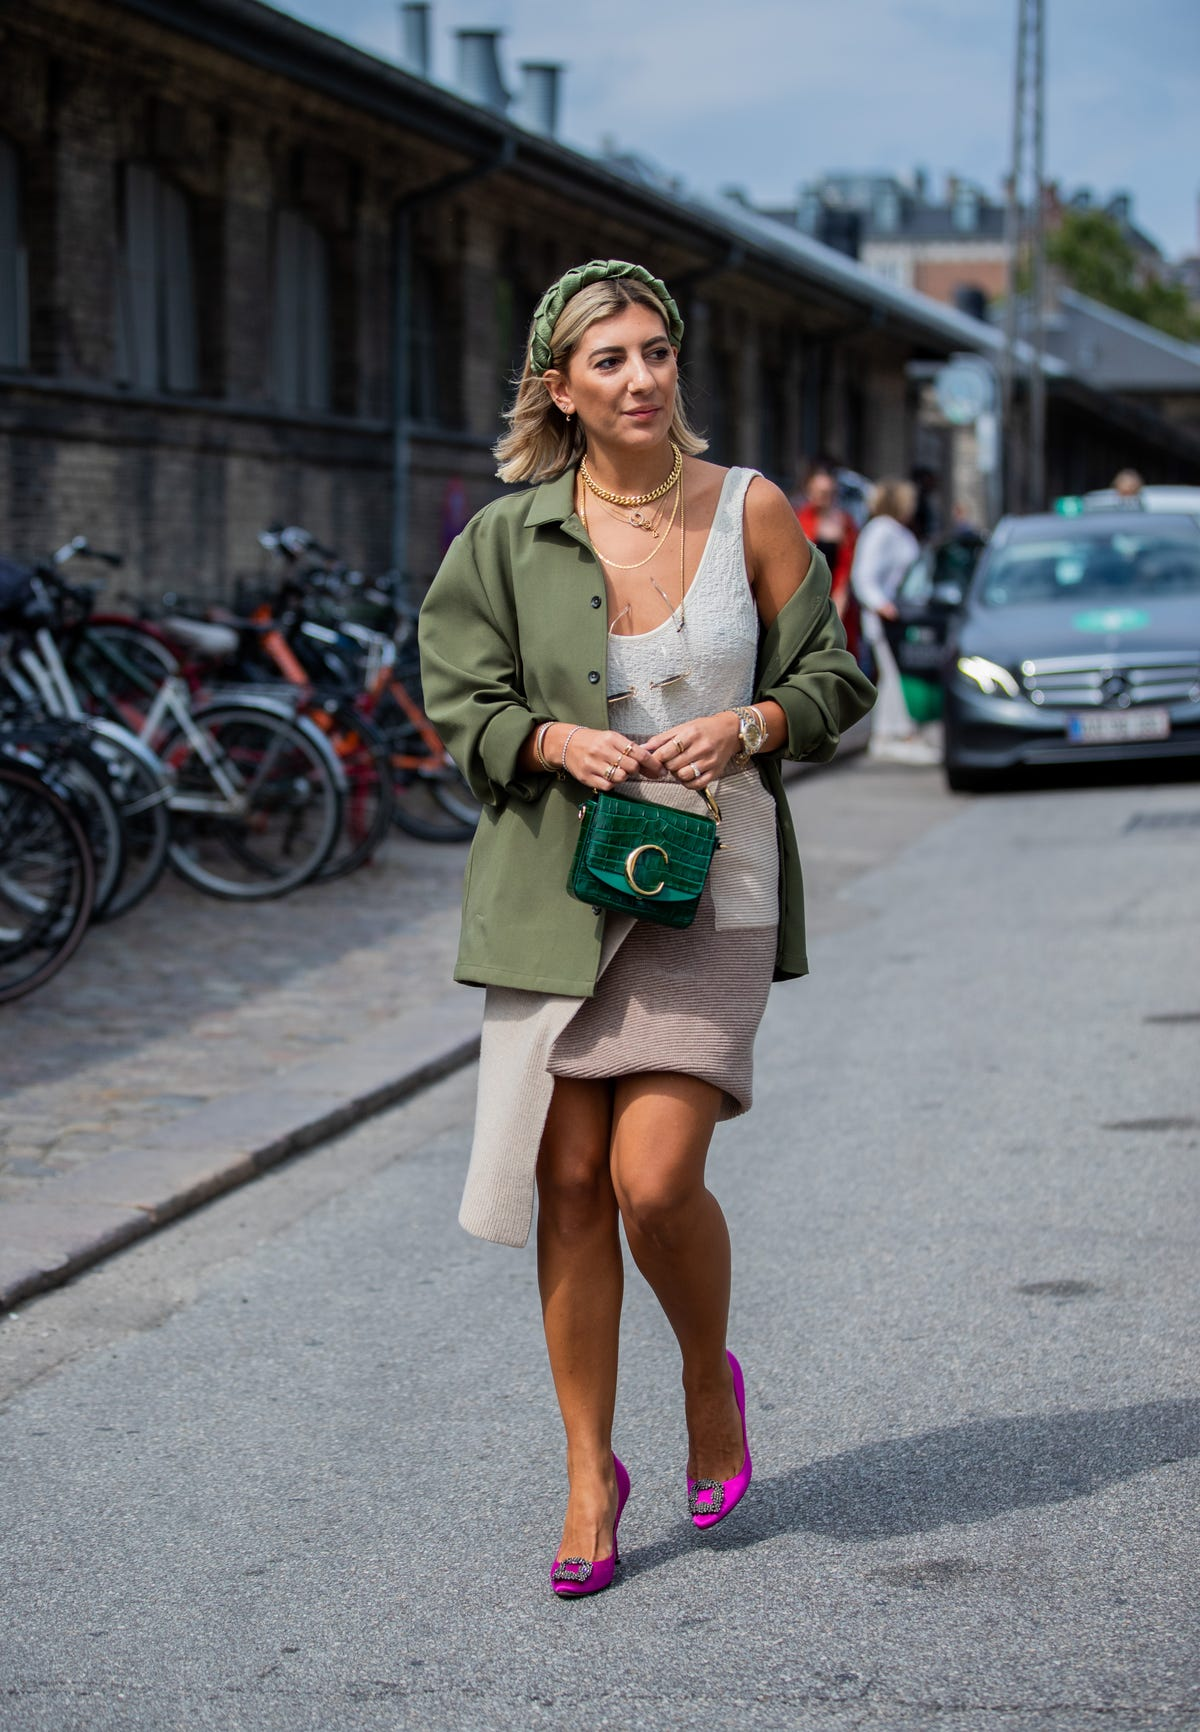 Image result for refinery 29 copenhagen street style clueless